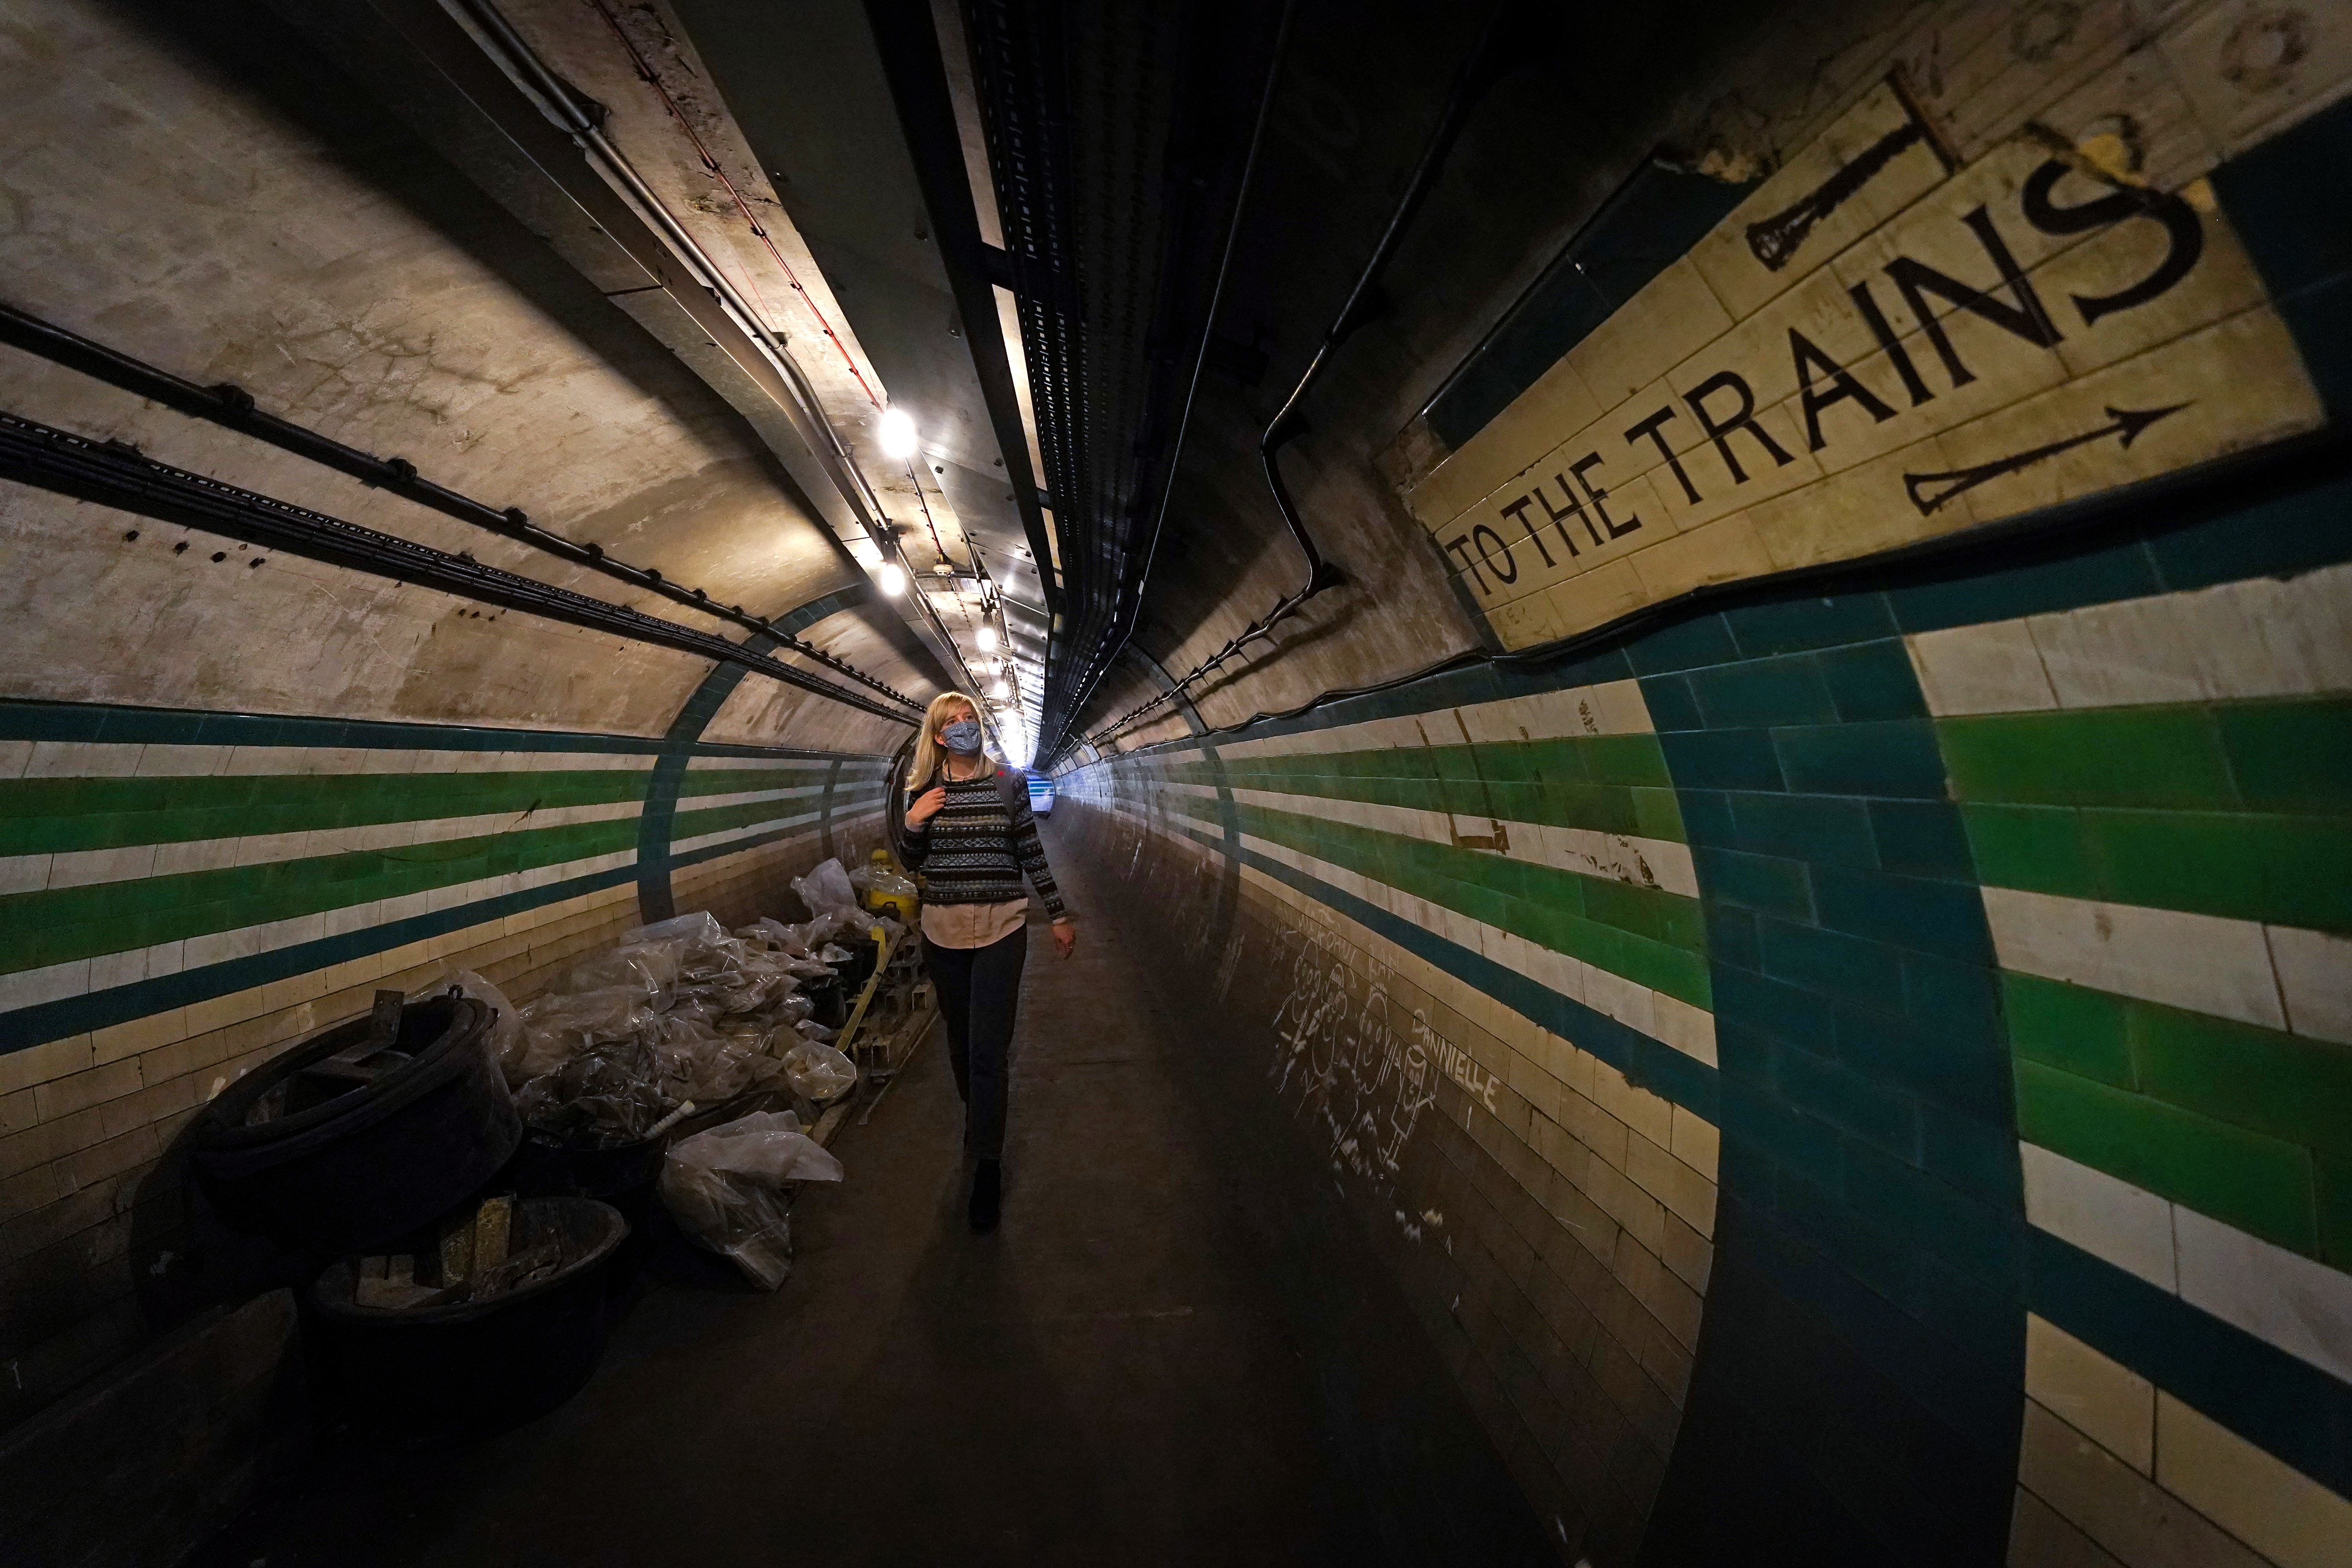 <p>A member of Transport Museum staff walks through a disused passageway during a tour at the Piccadilly Circus disused tube station in London. London Transport Museum are re-starting in-person Hidden London tours of disused tube stations for the first time since the pandemic. Picture date: Tuesday September 28, 2021.</p>